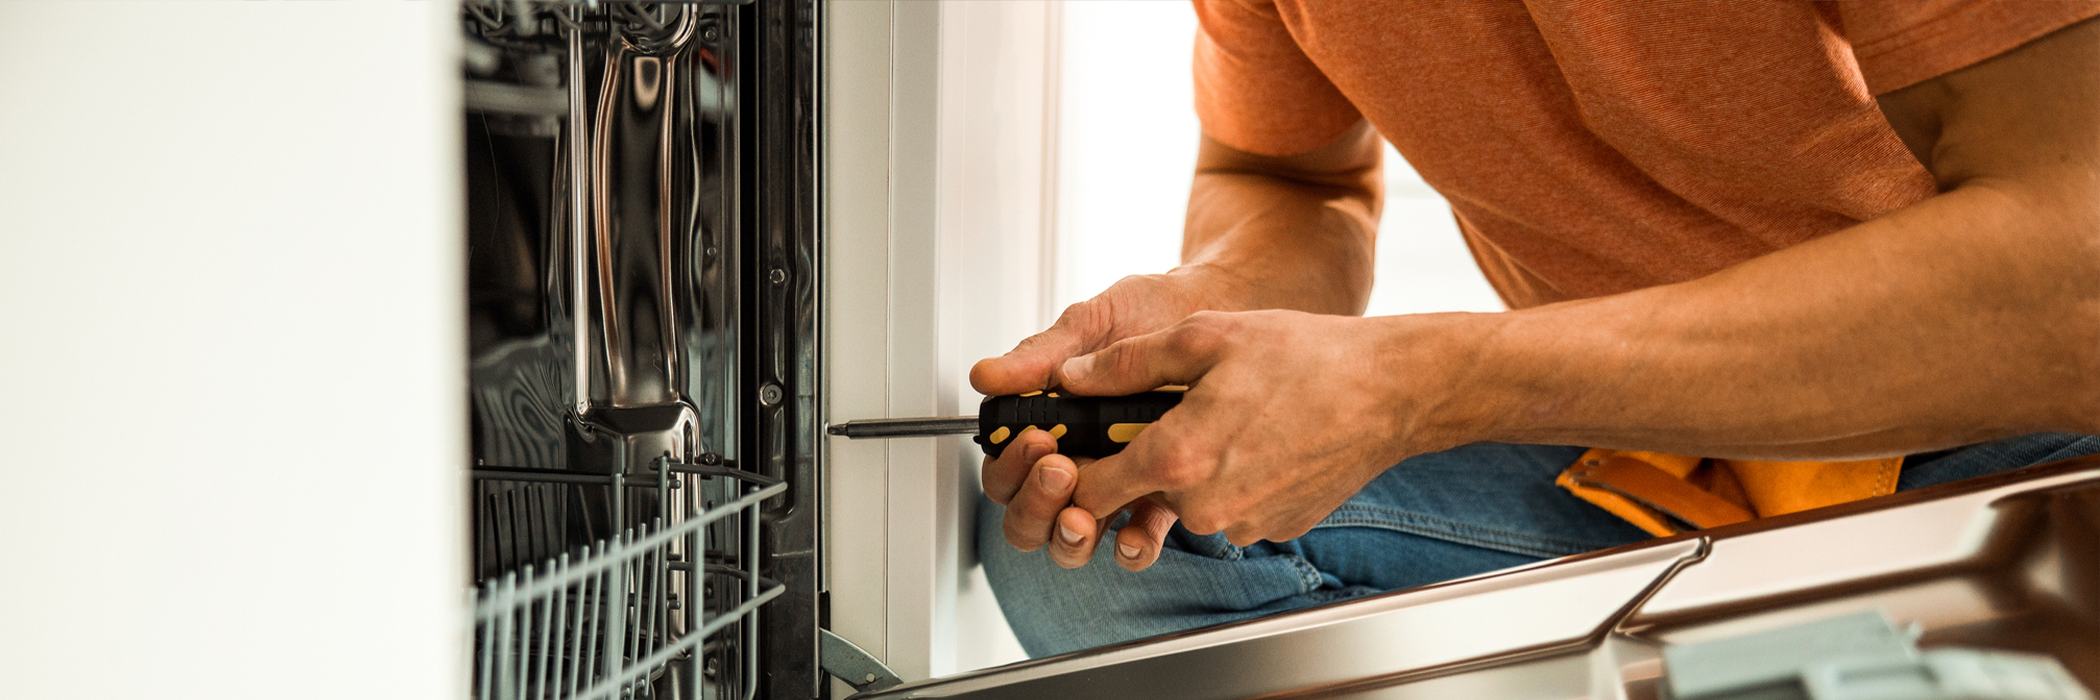 Close up of professional worker holding screwdriver to repair dishwasher.